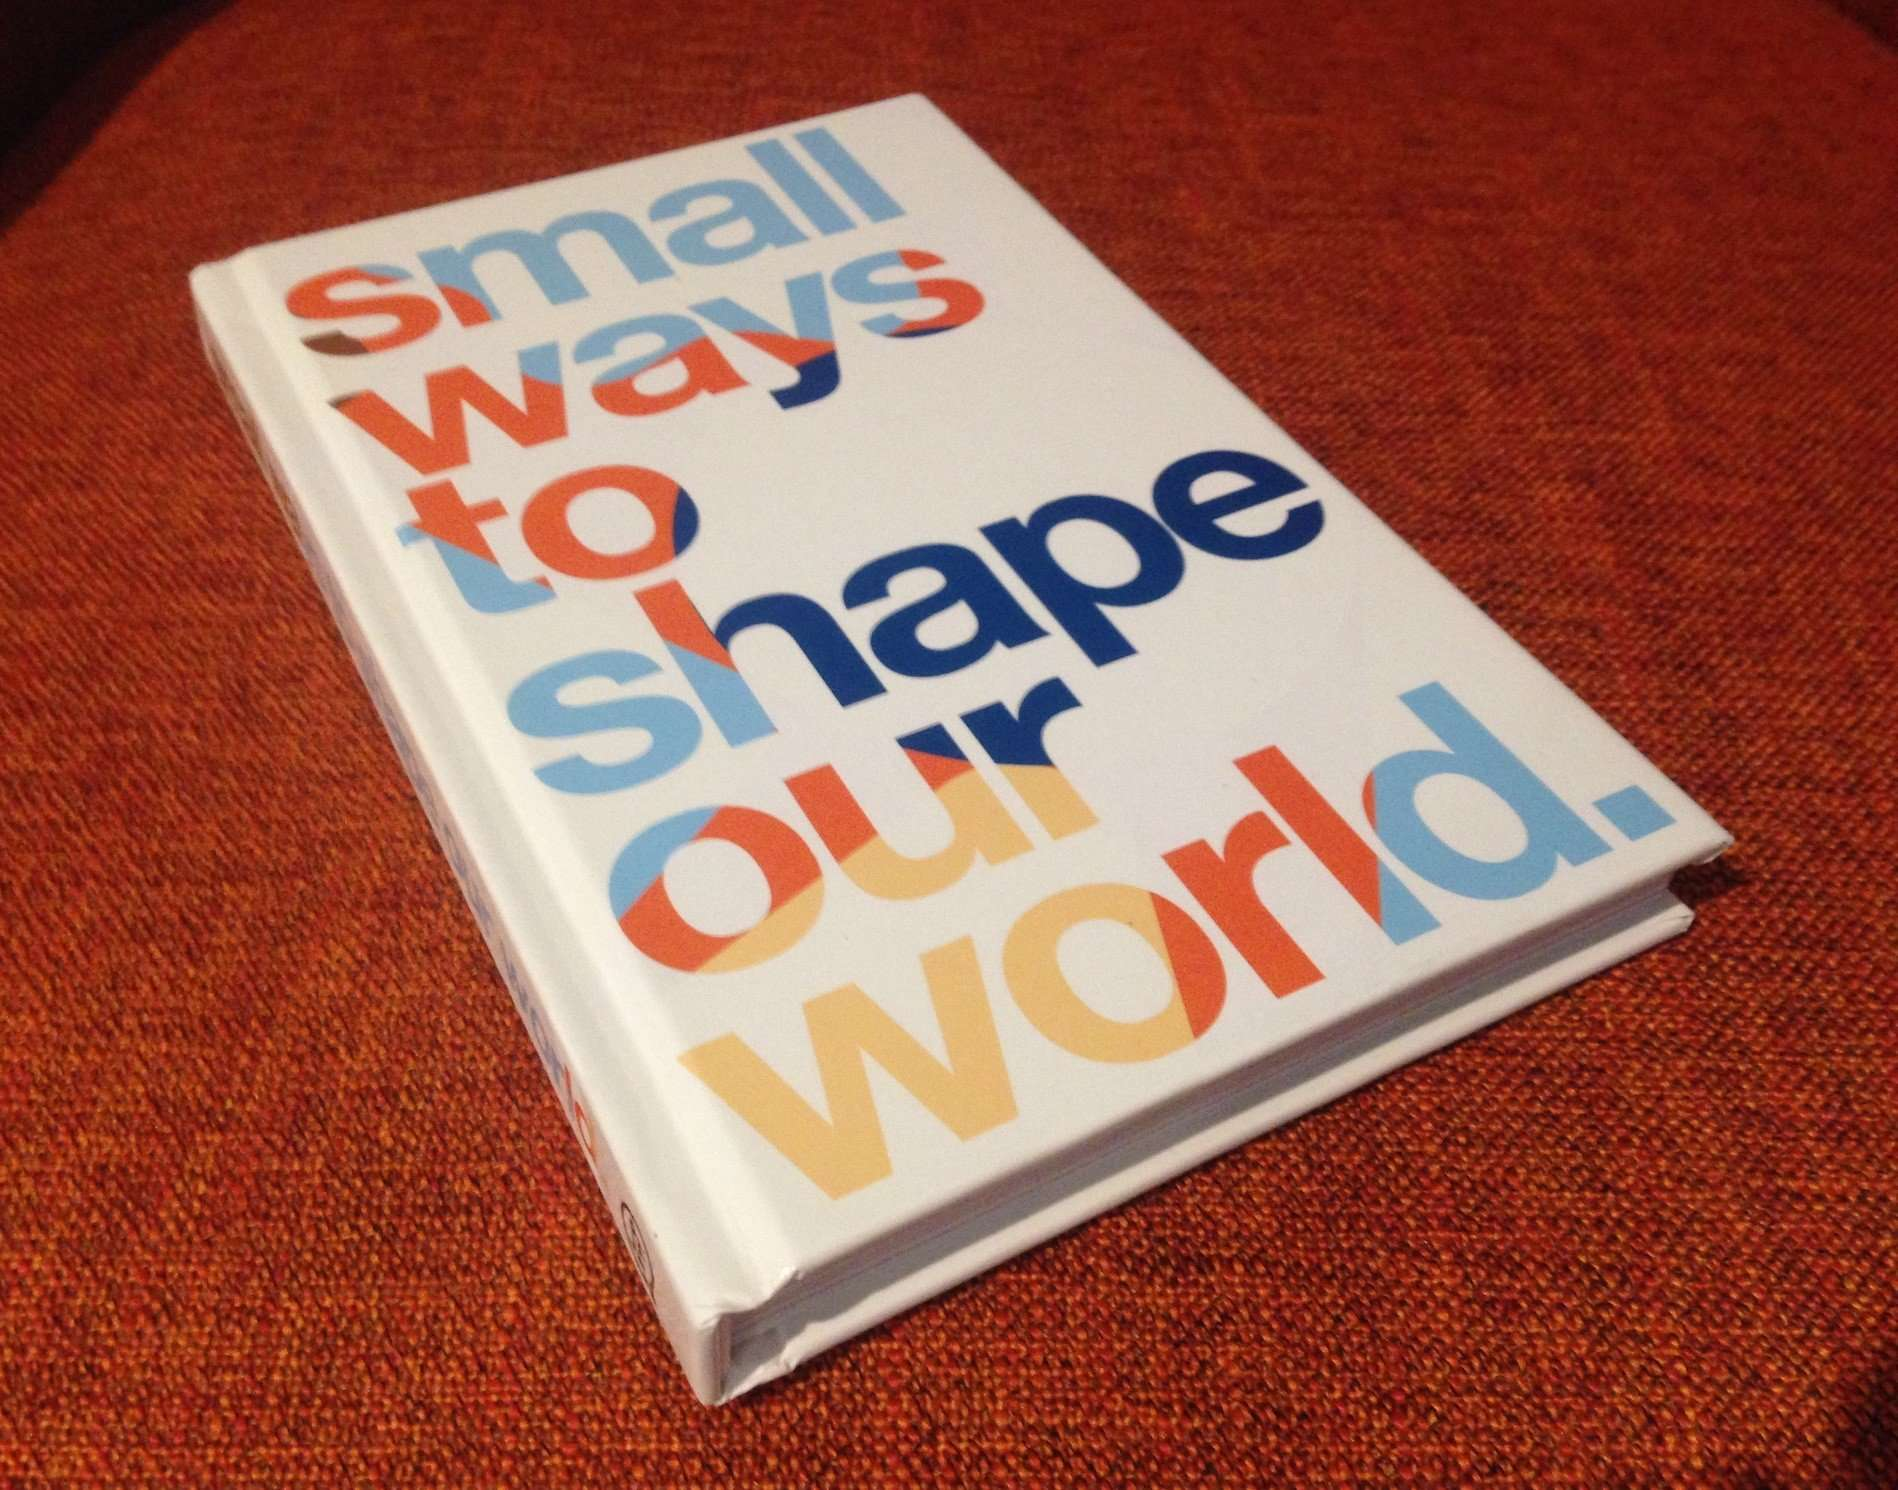 Igniting Change - Small Ways to Shape Our World